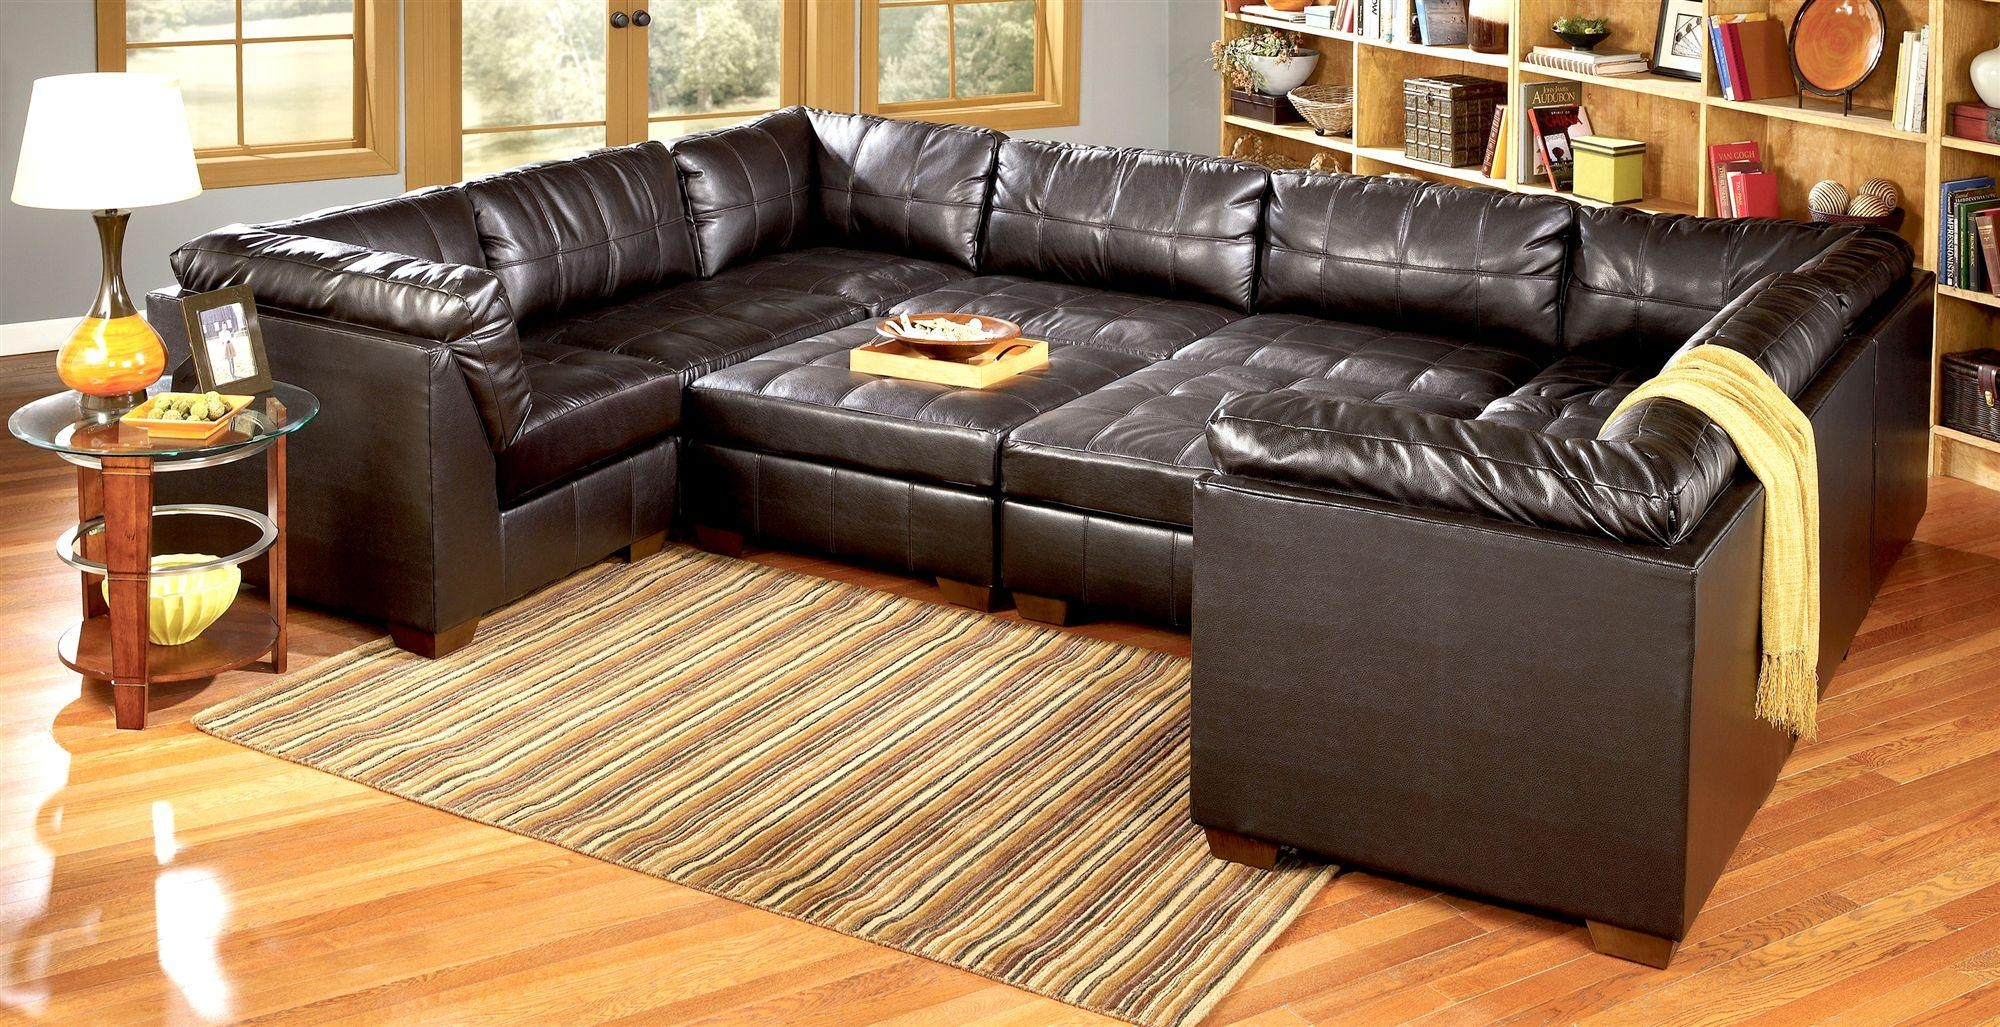 Furniture: 3 Piece Sectional Sofas And Pit Sectional For Gorgeous Throughout Pit Sofas (View 17 of 20)